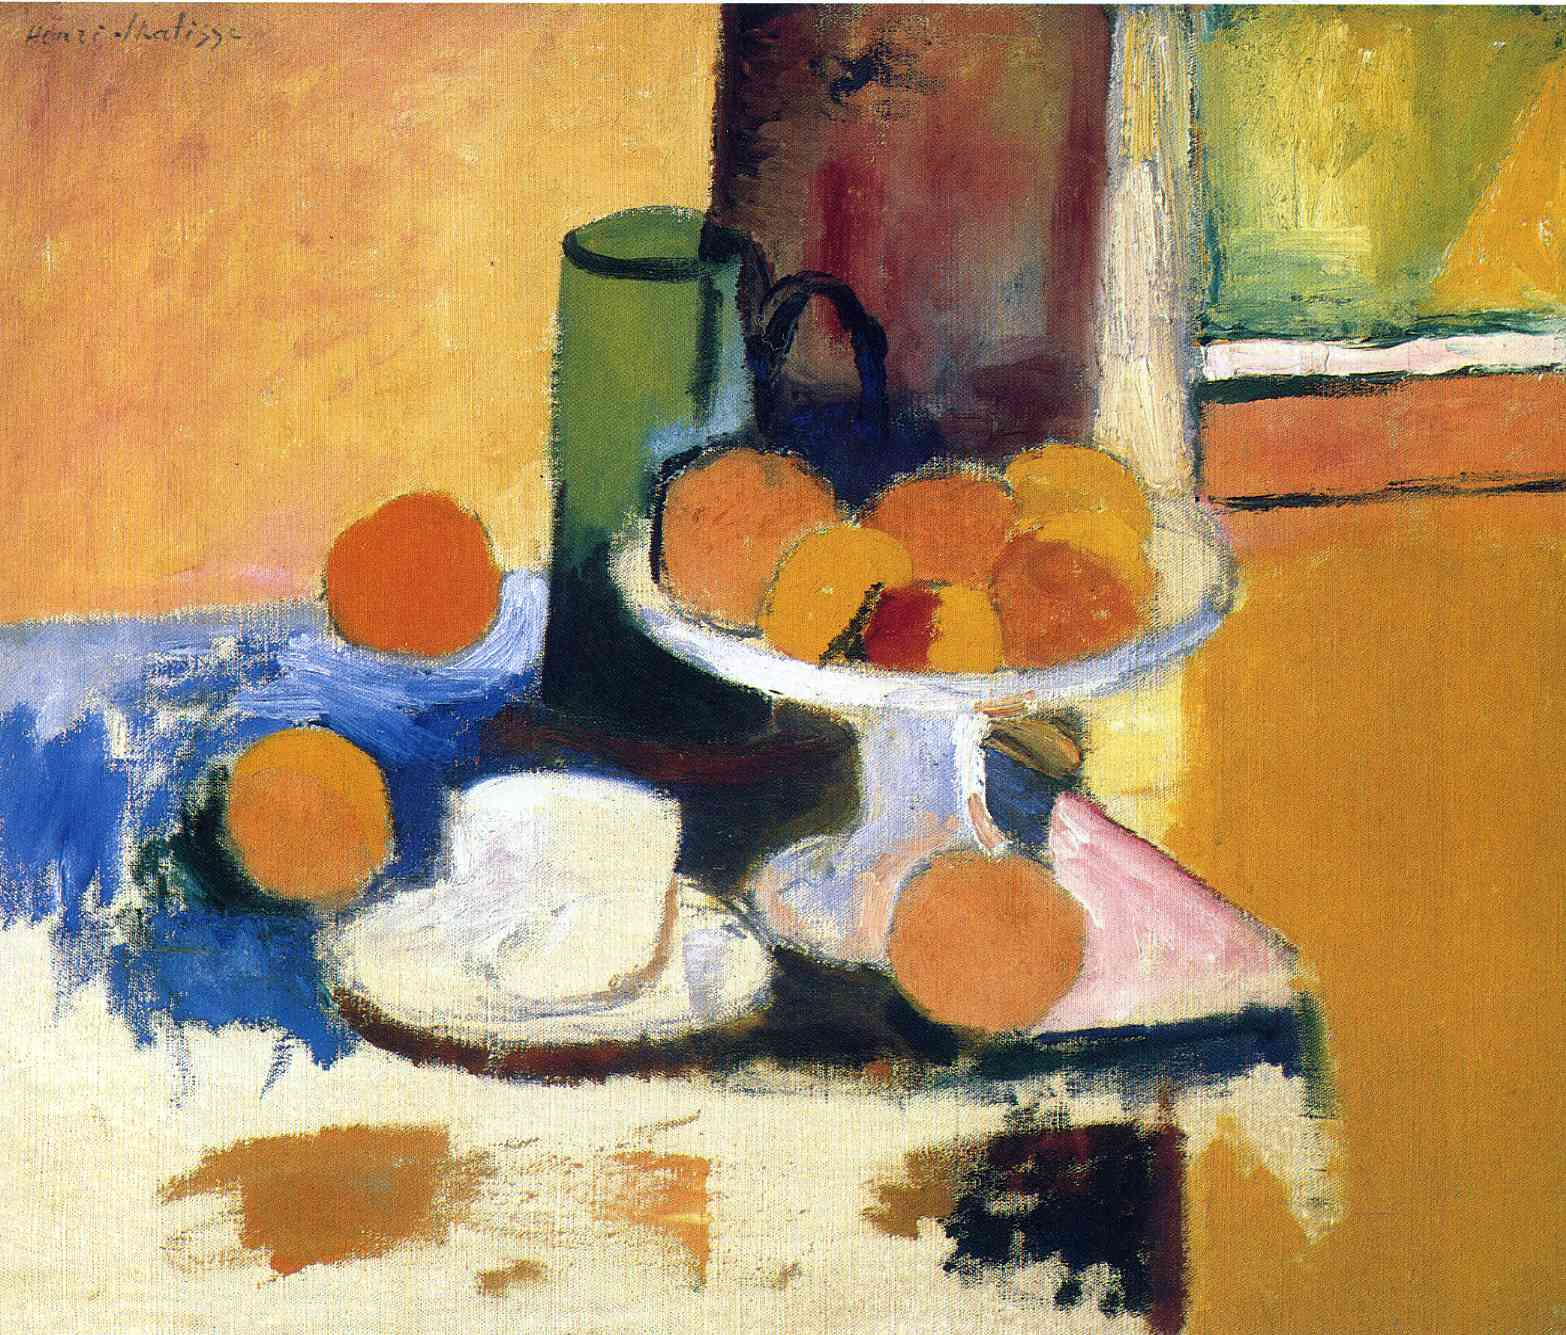 Henri Matisse - Still Life with Oranges 1899